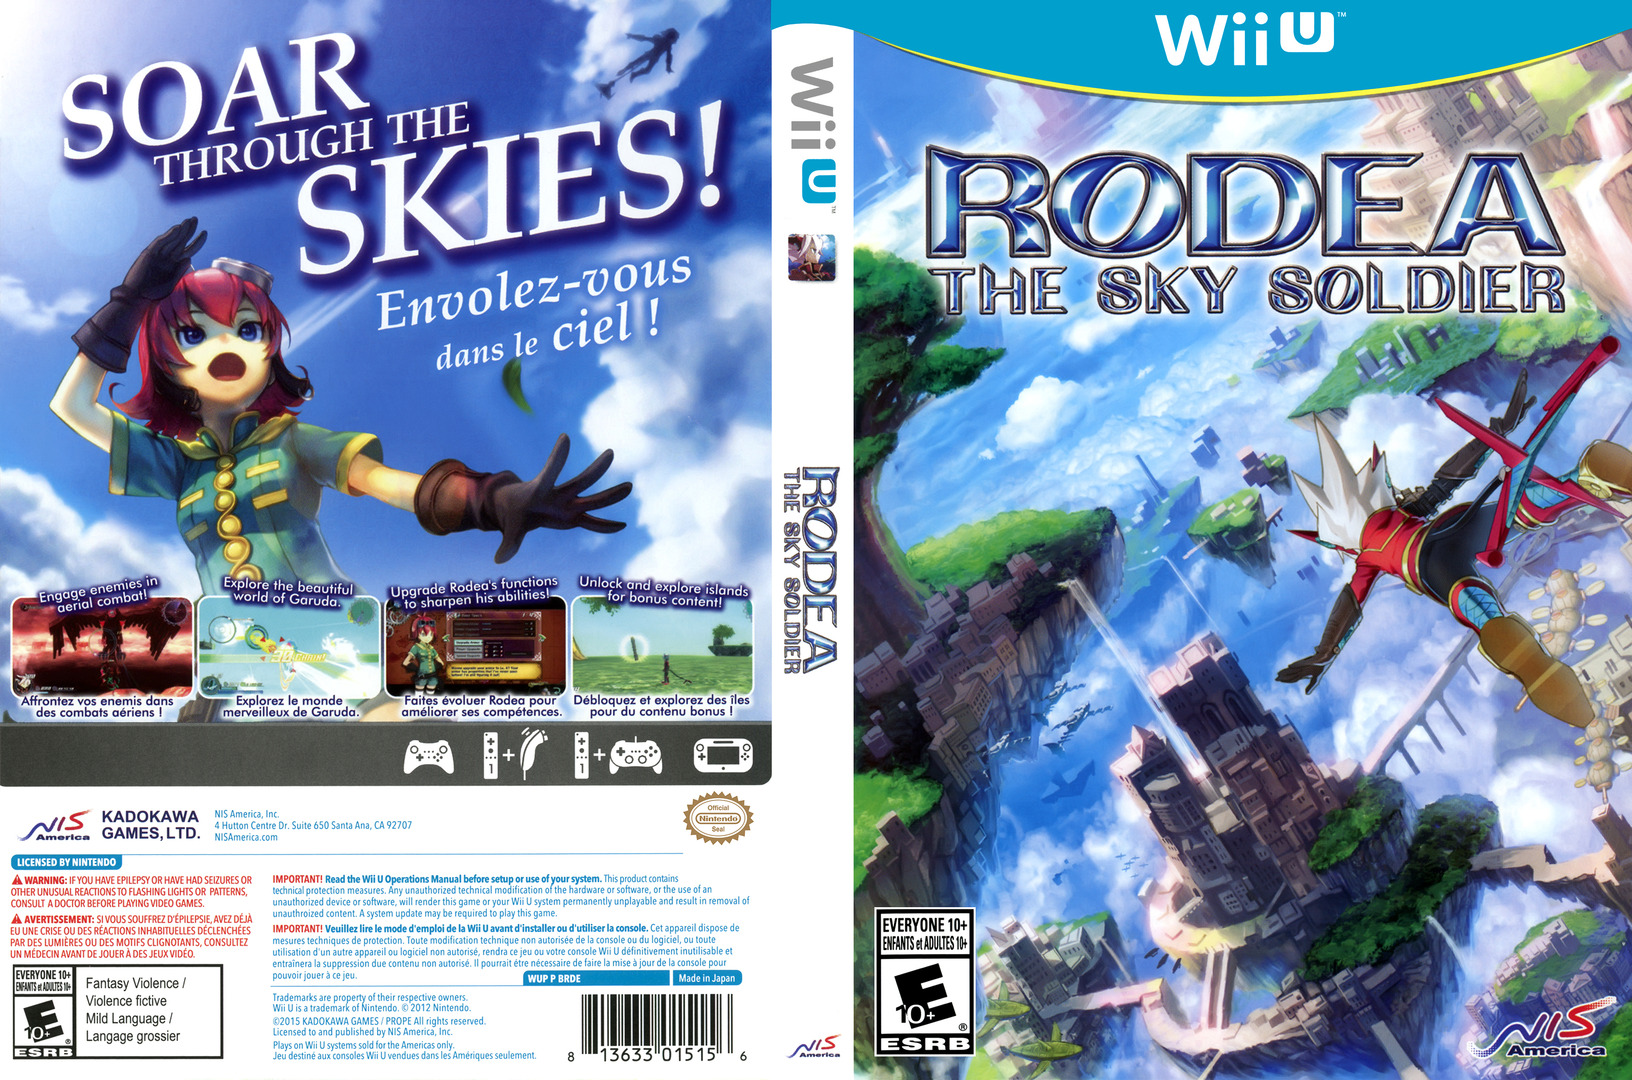 Rodea the Sky Soldier WiiU coverfullHQ (BRDENS)